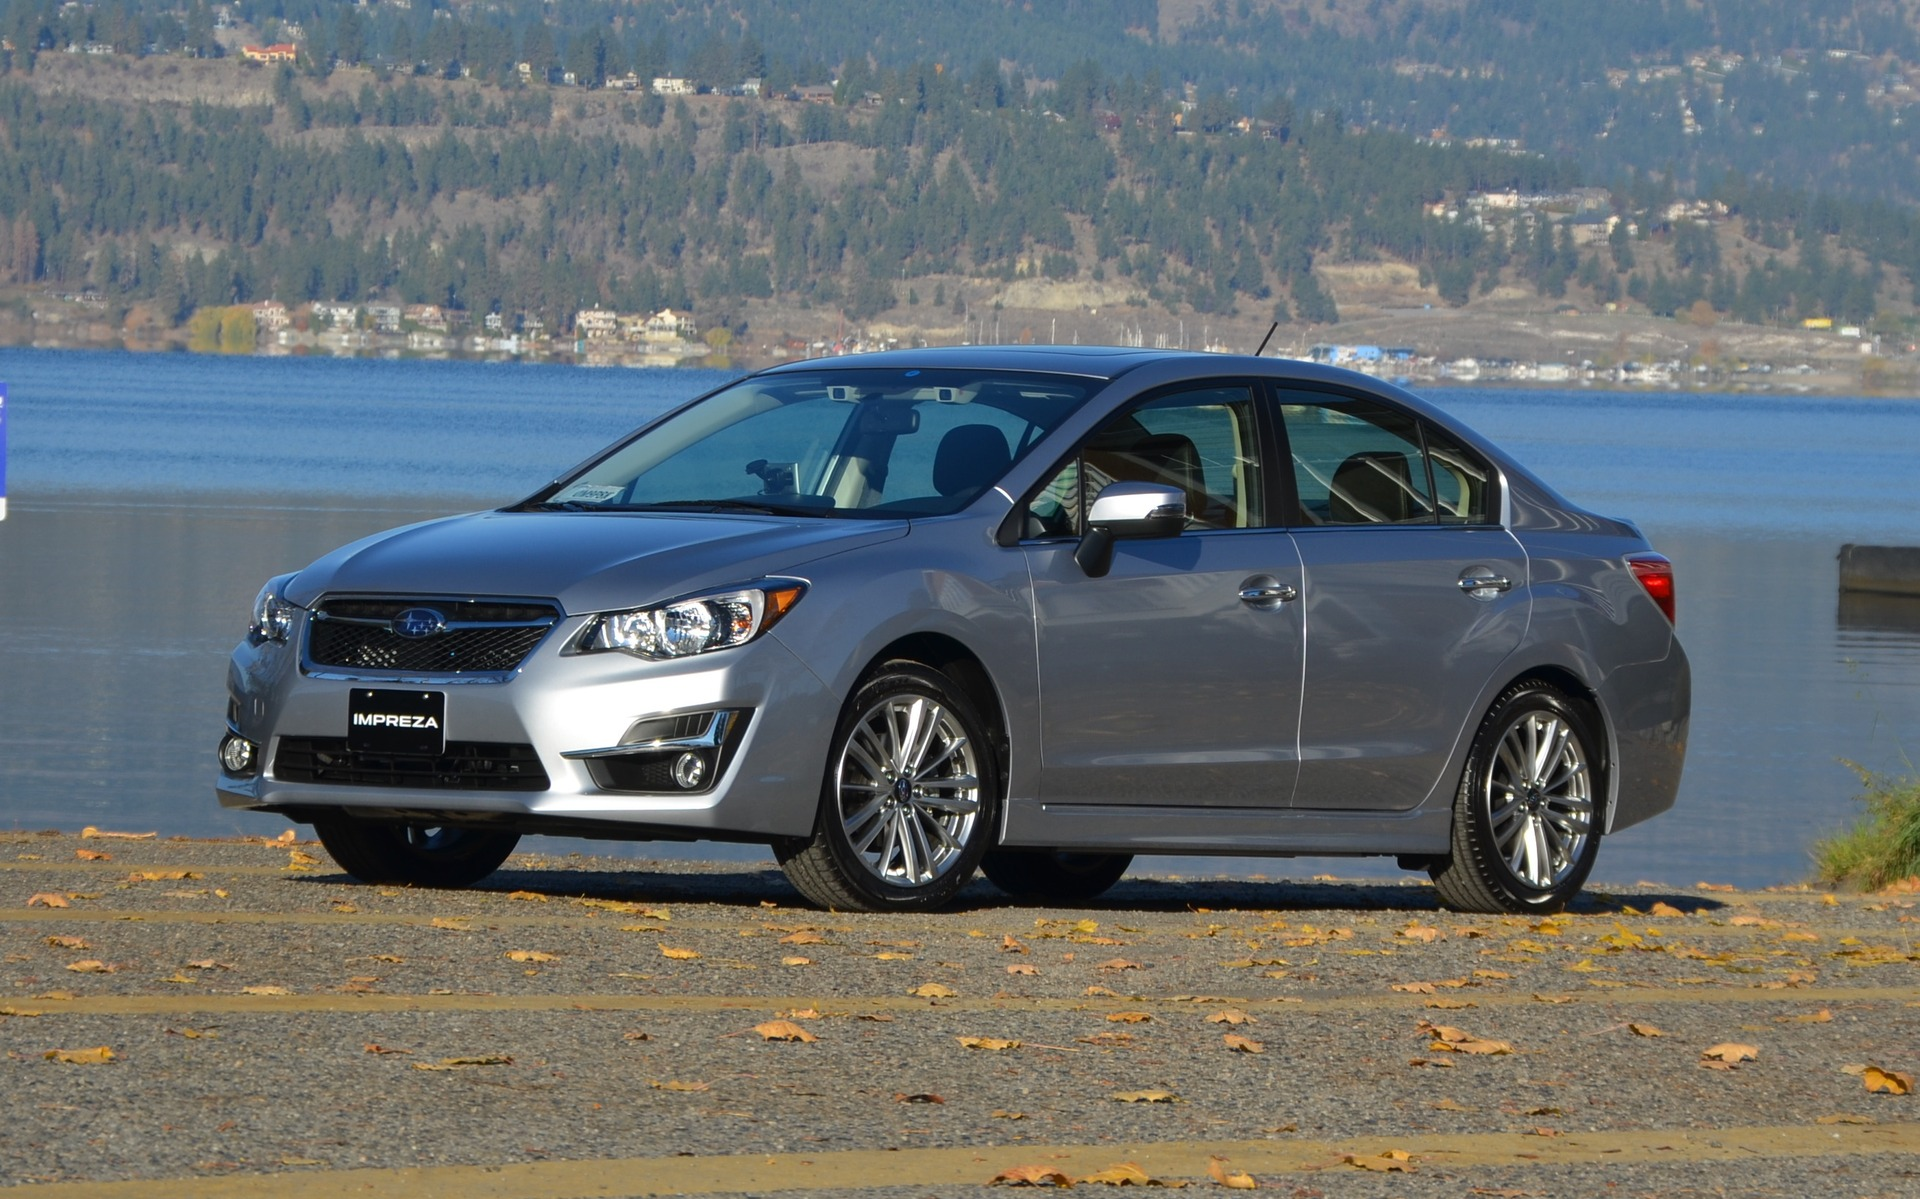 2015 subaru impreza: thank goodness for winter! - the car guide